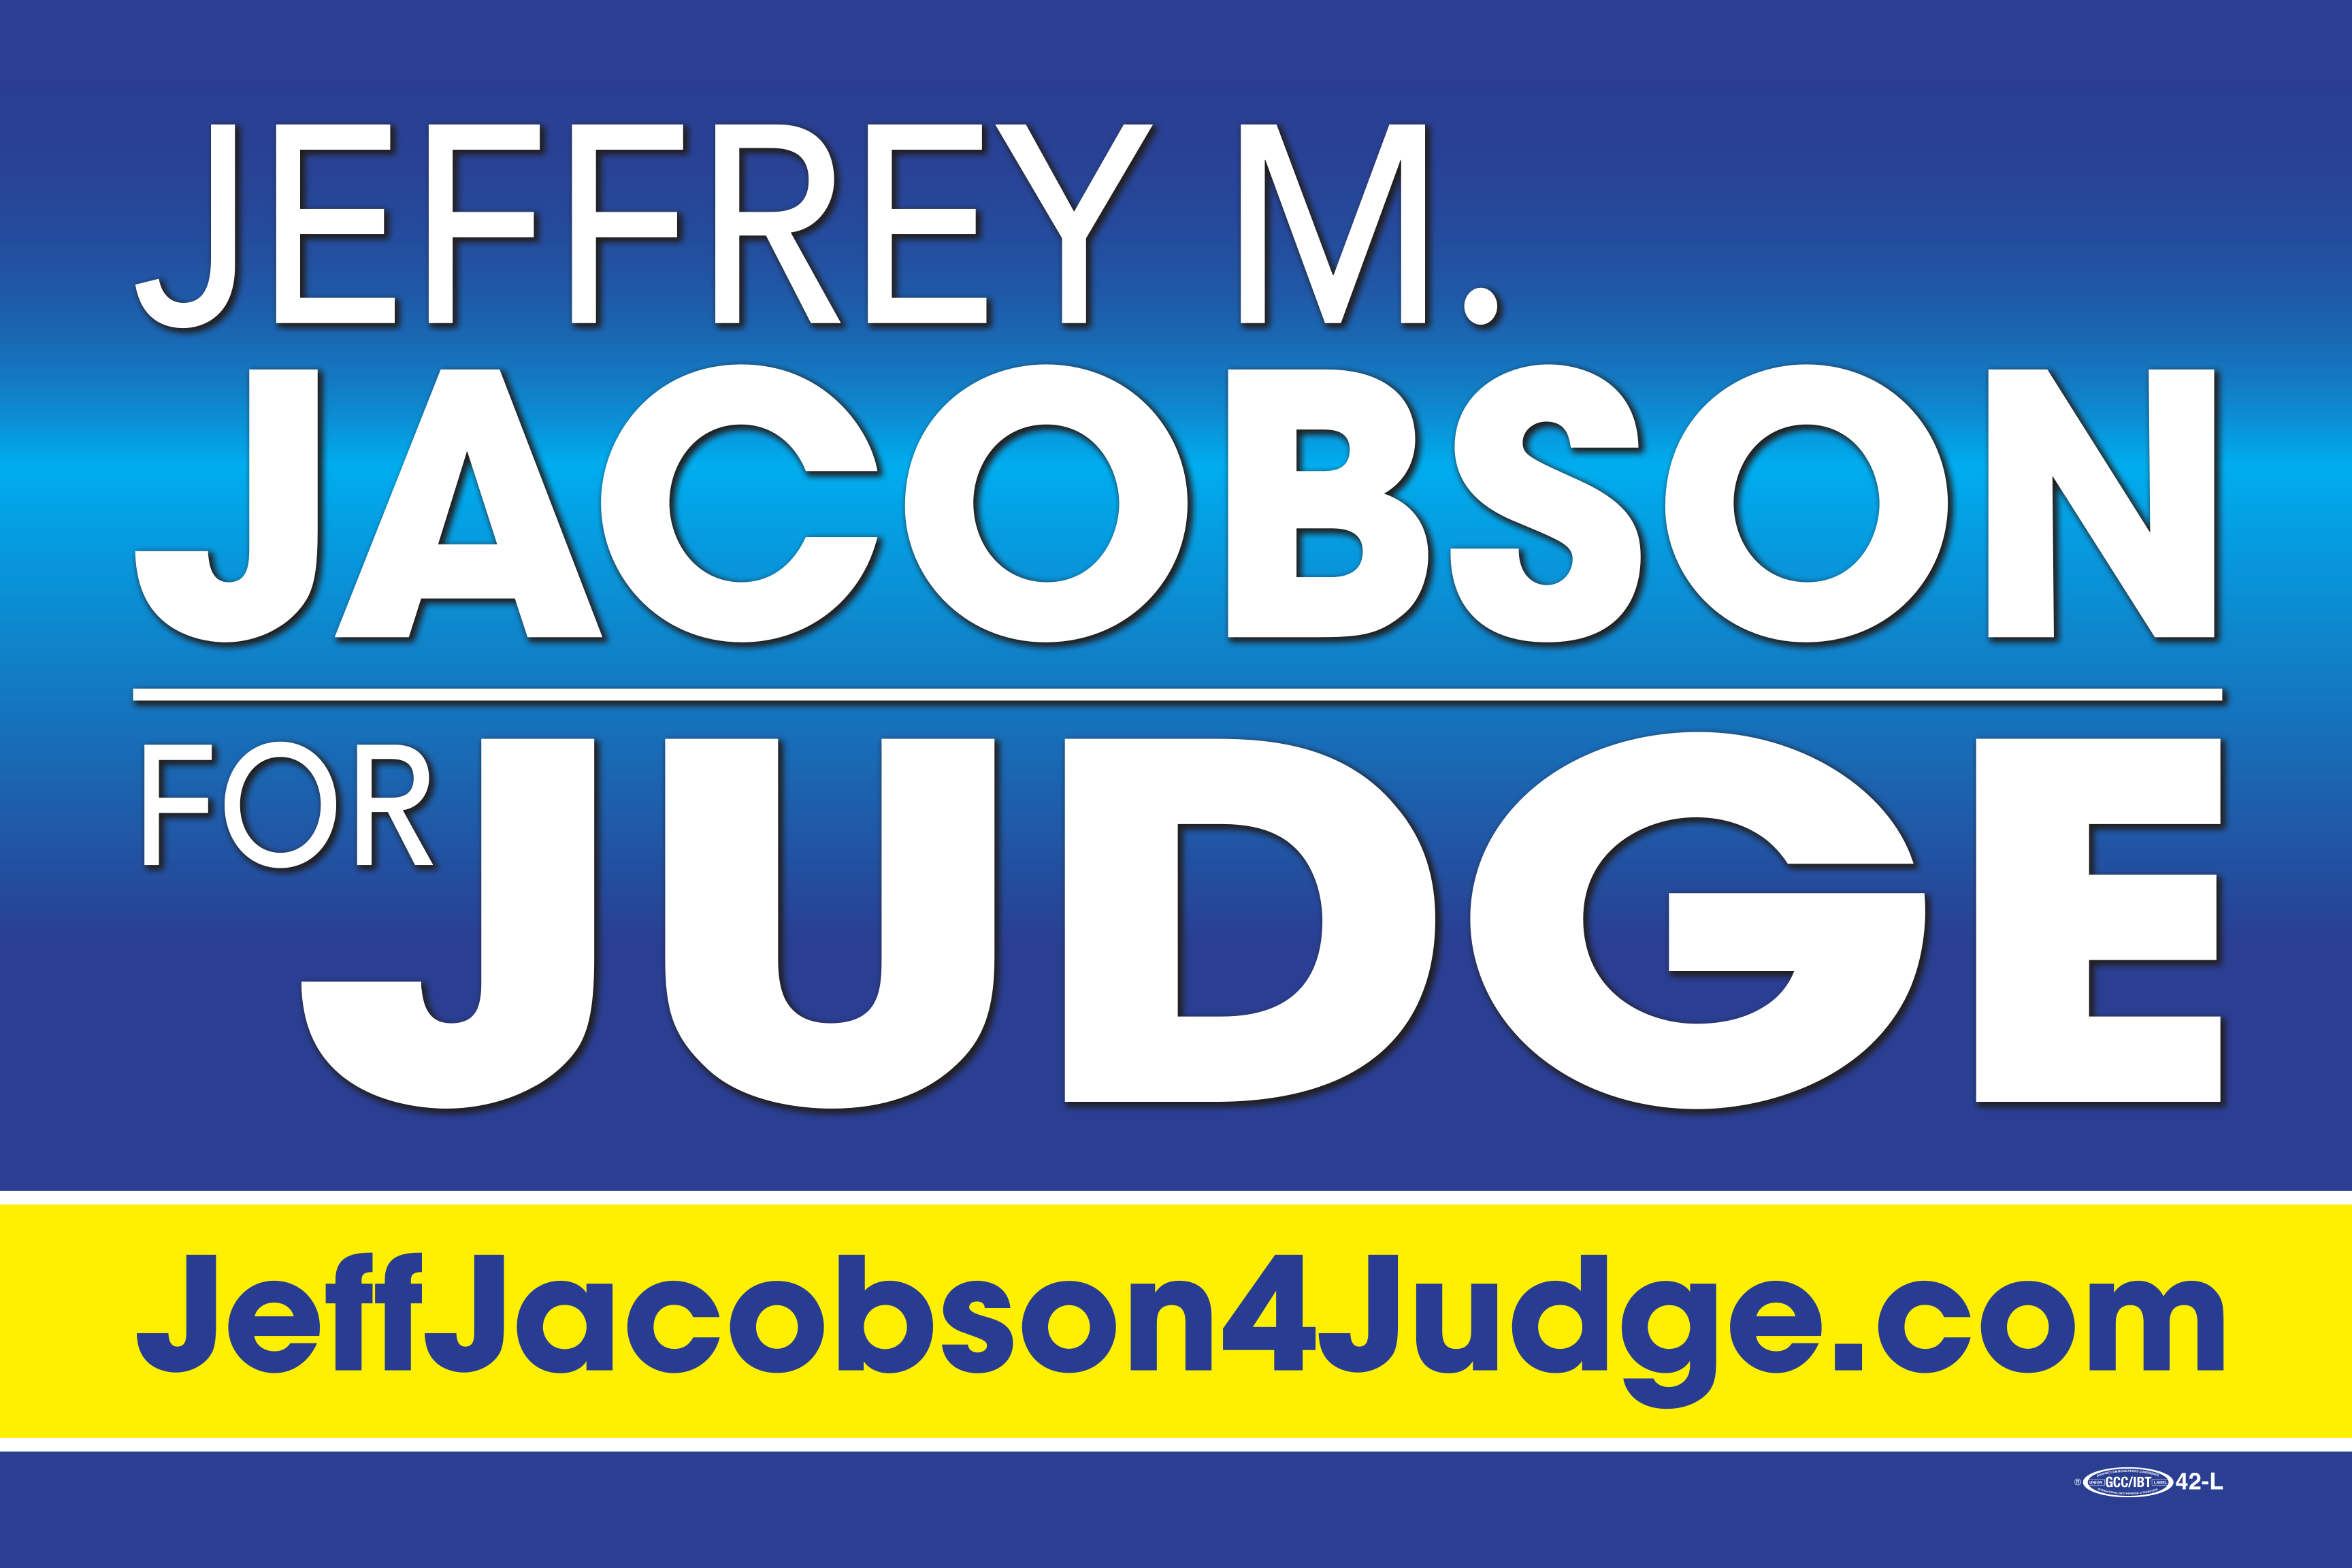 Friends of Jeffrey M. Jacobson for Circuit Court Judge